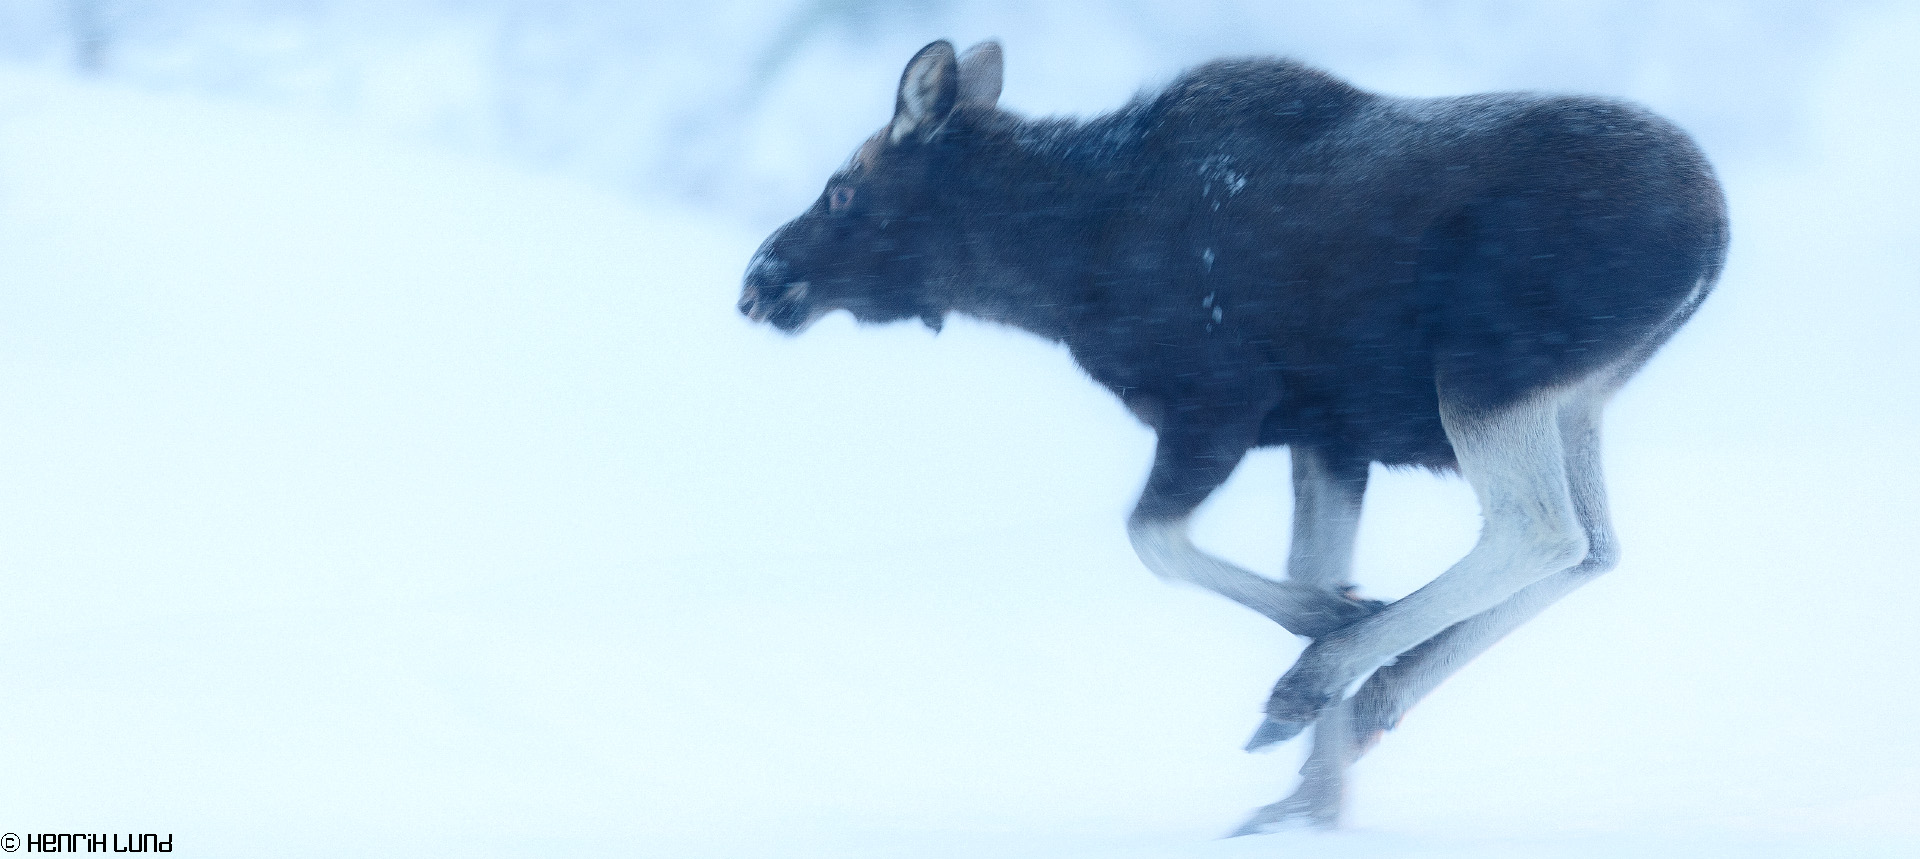 Moose on the run, Laukkuluspa, Sweden, January 2015.